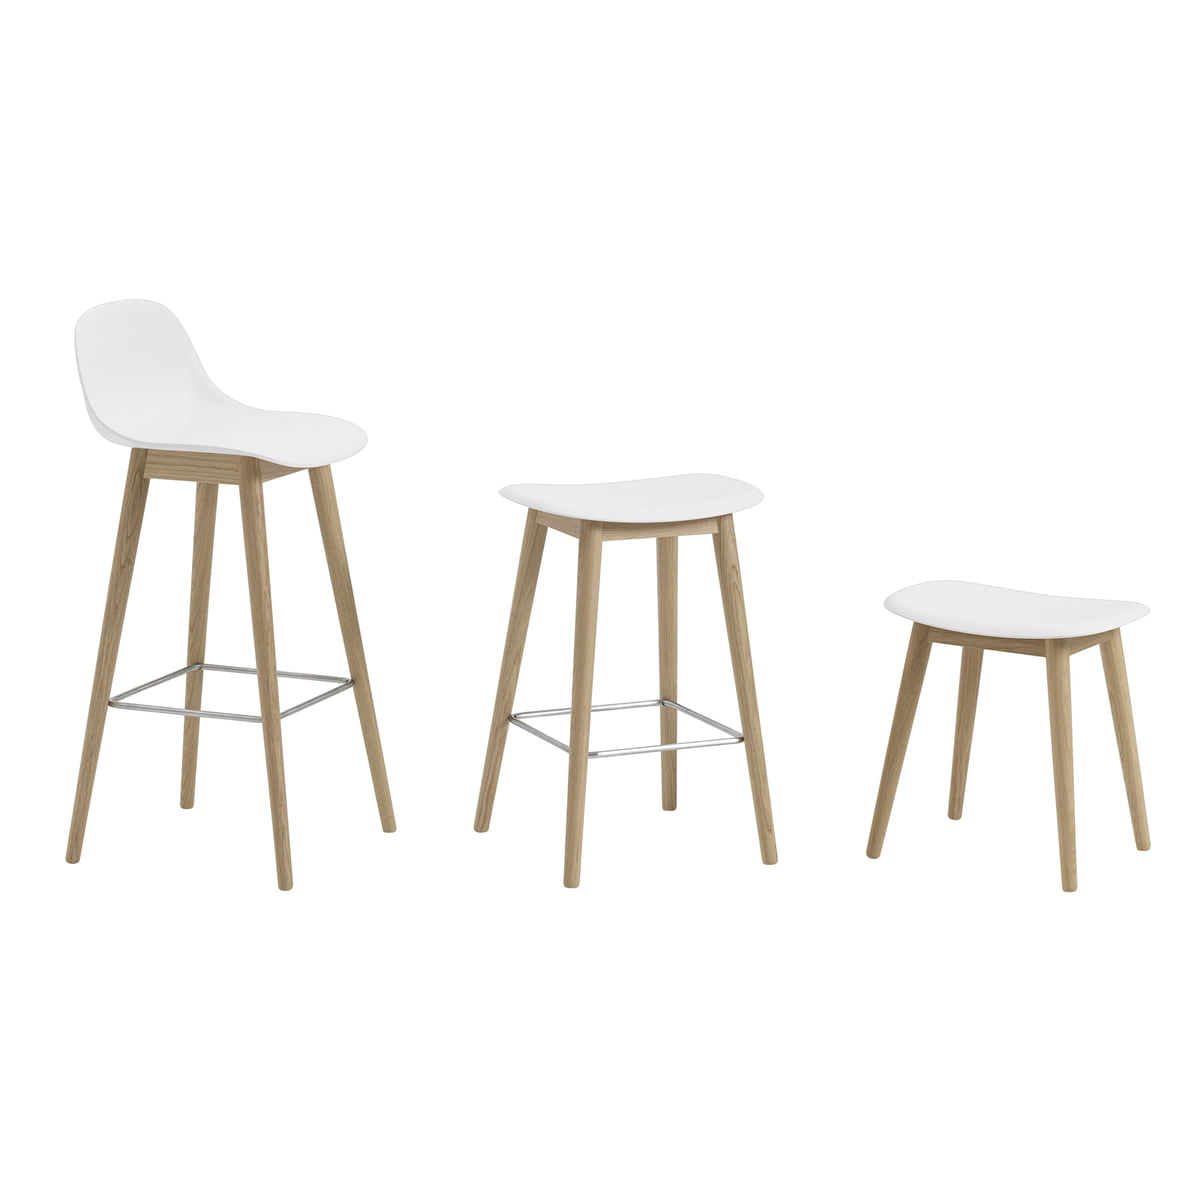 Fiber bar stool wood base by muuto connox for Barhocker cognac